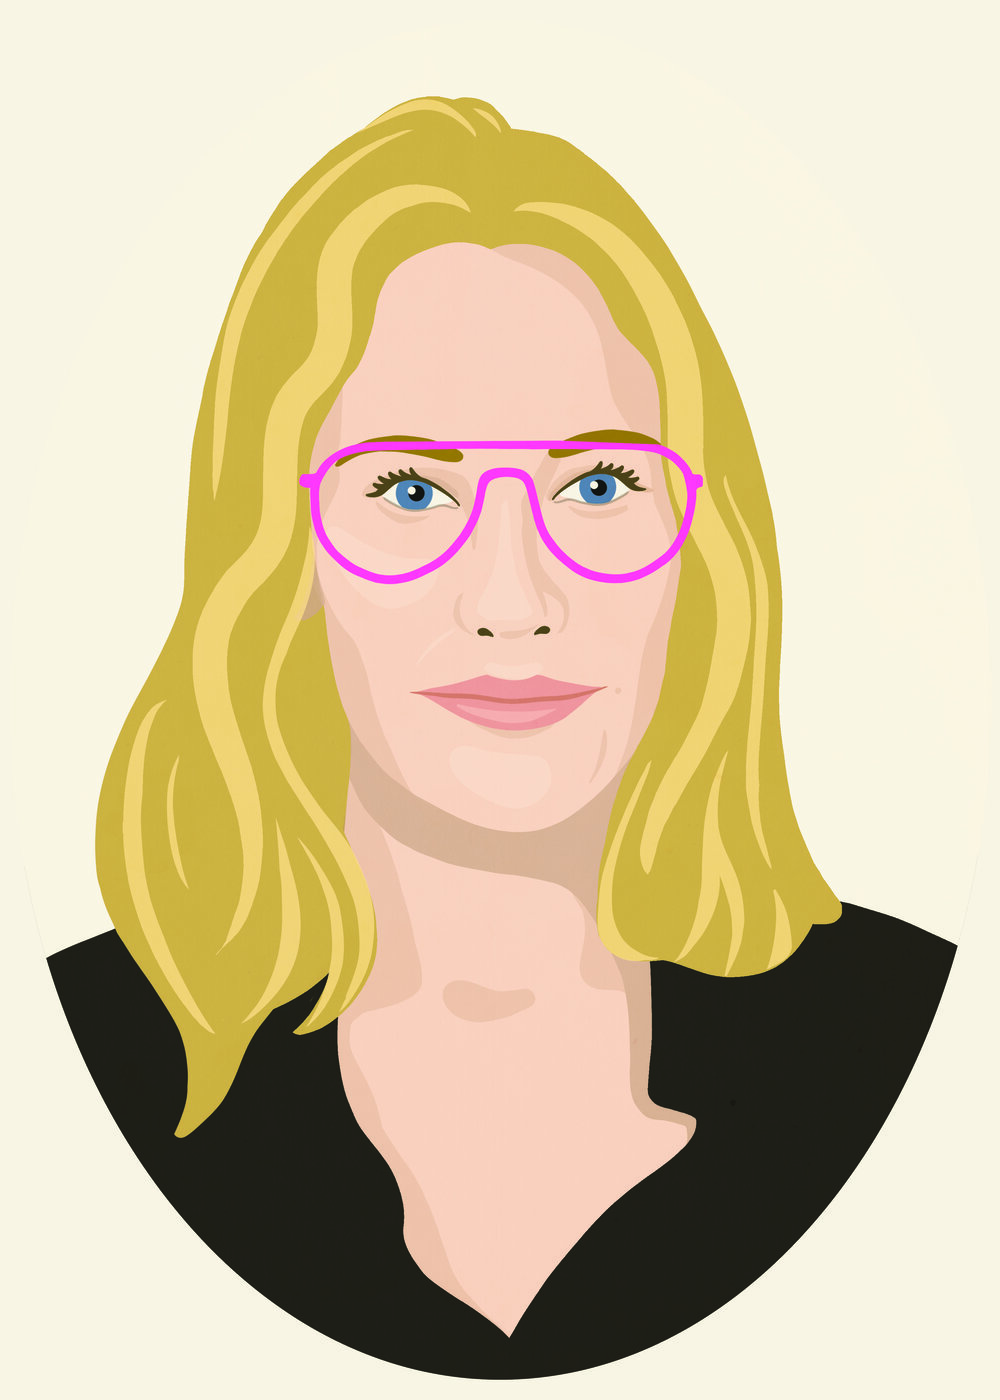 A portrait of Jennifer wearing framed glasses. The style is with no sharp lines and wavy lines.